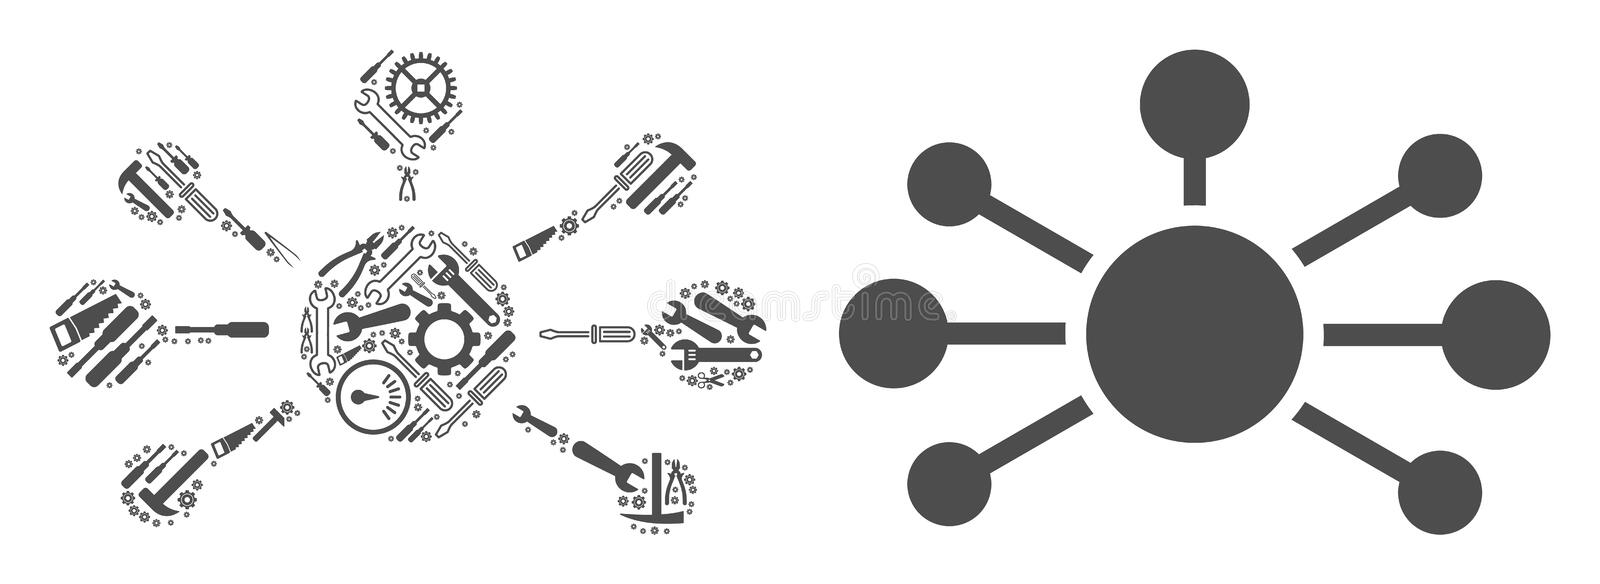 Relation Links Mosaic of Repair Tools. Relation links collage of workshop tools. Vector relation links icon is made with gear wheels, spanners and other vector illustration